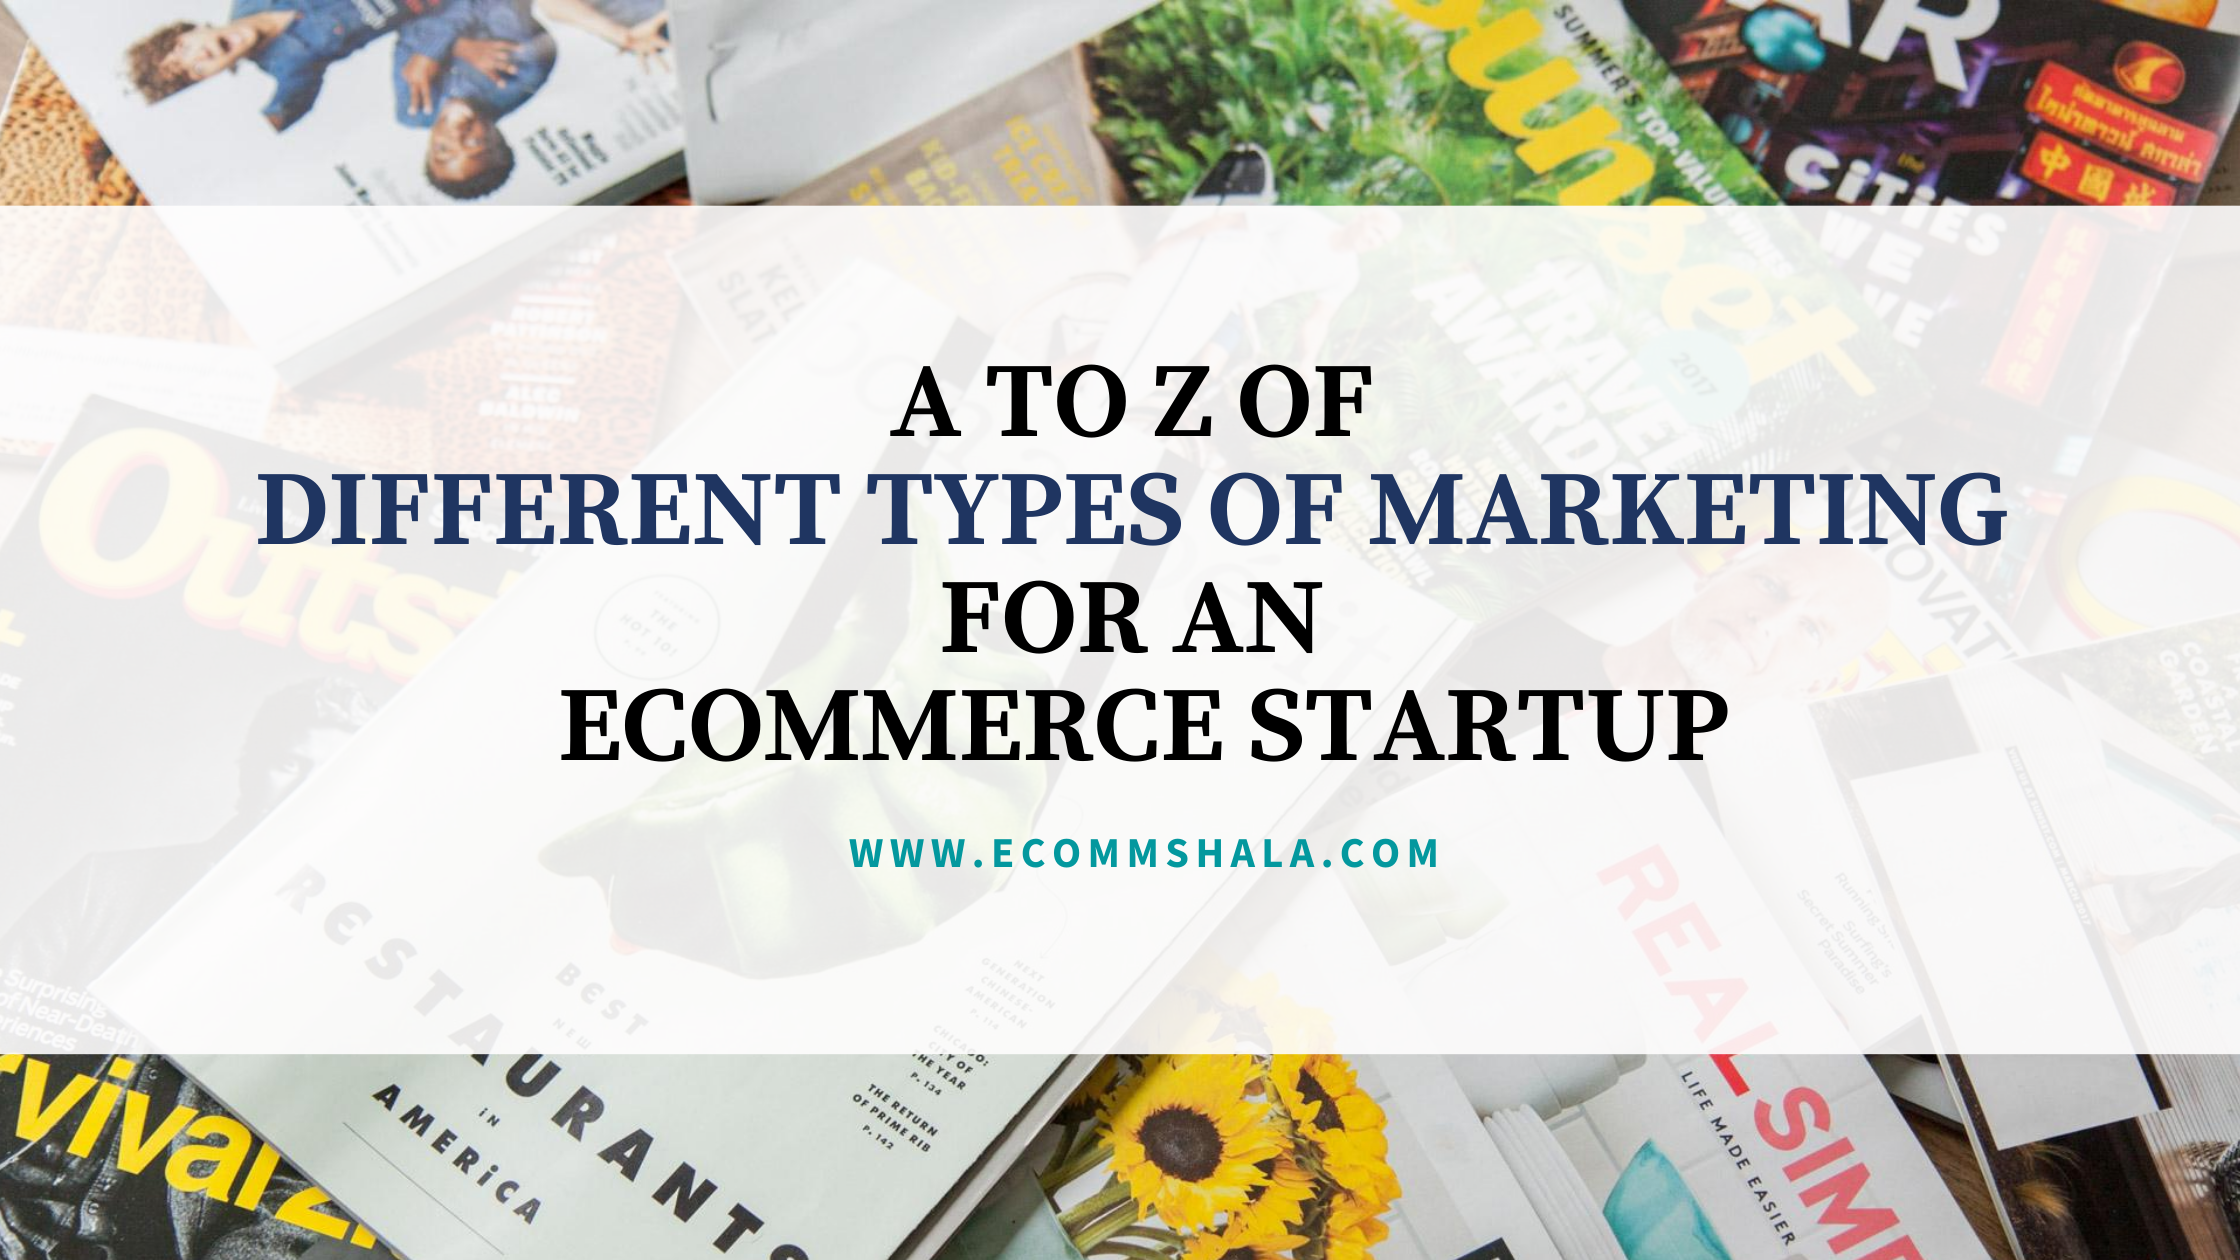 different types of marketing for ecommerce startup